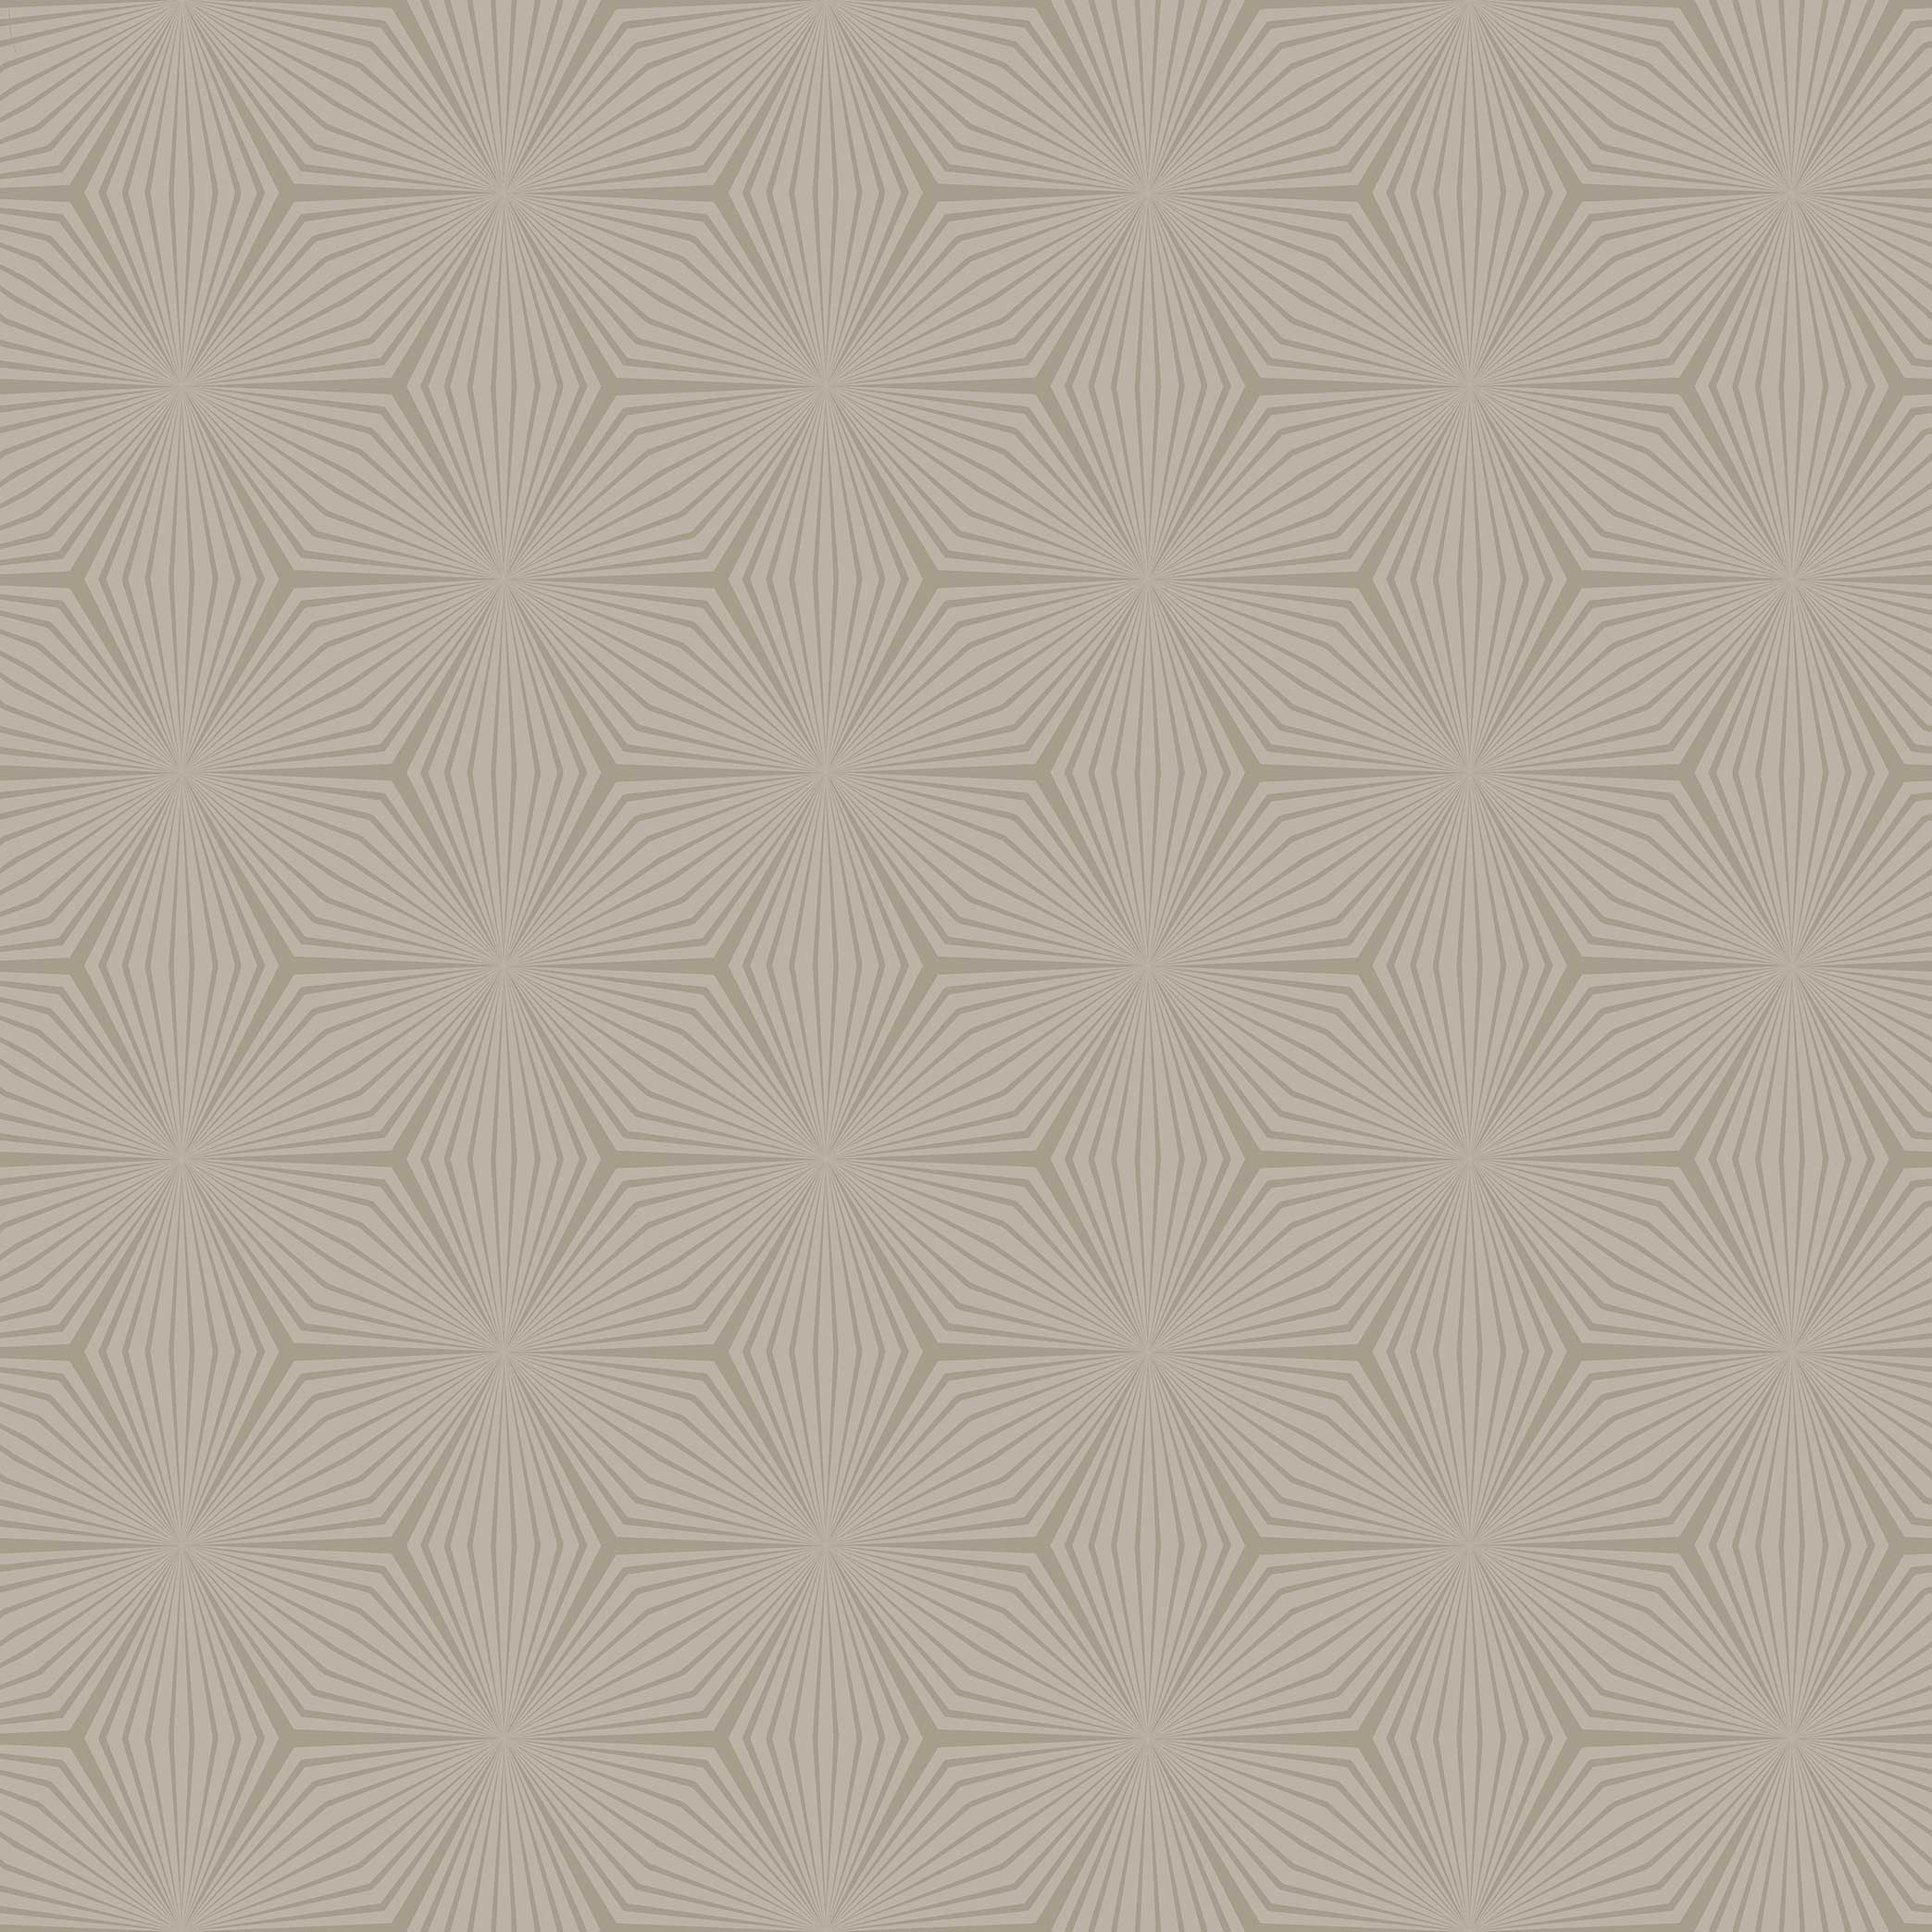 Retro Flower Linen Wallpaper